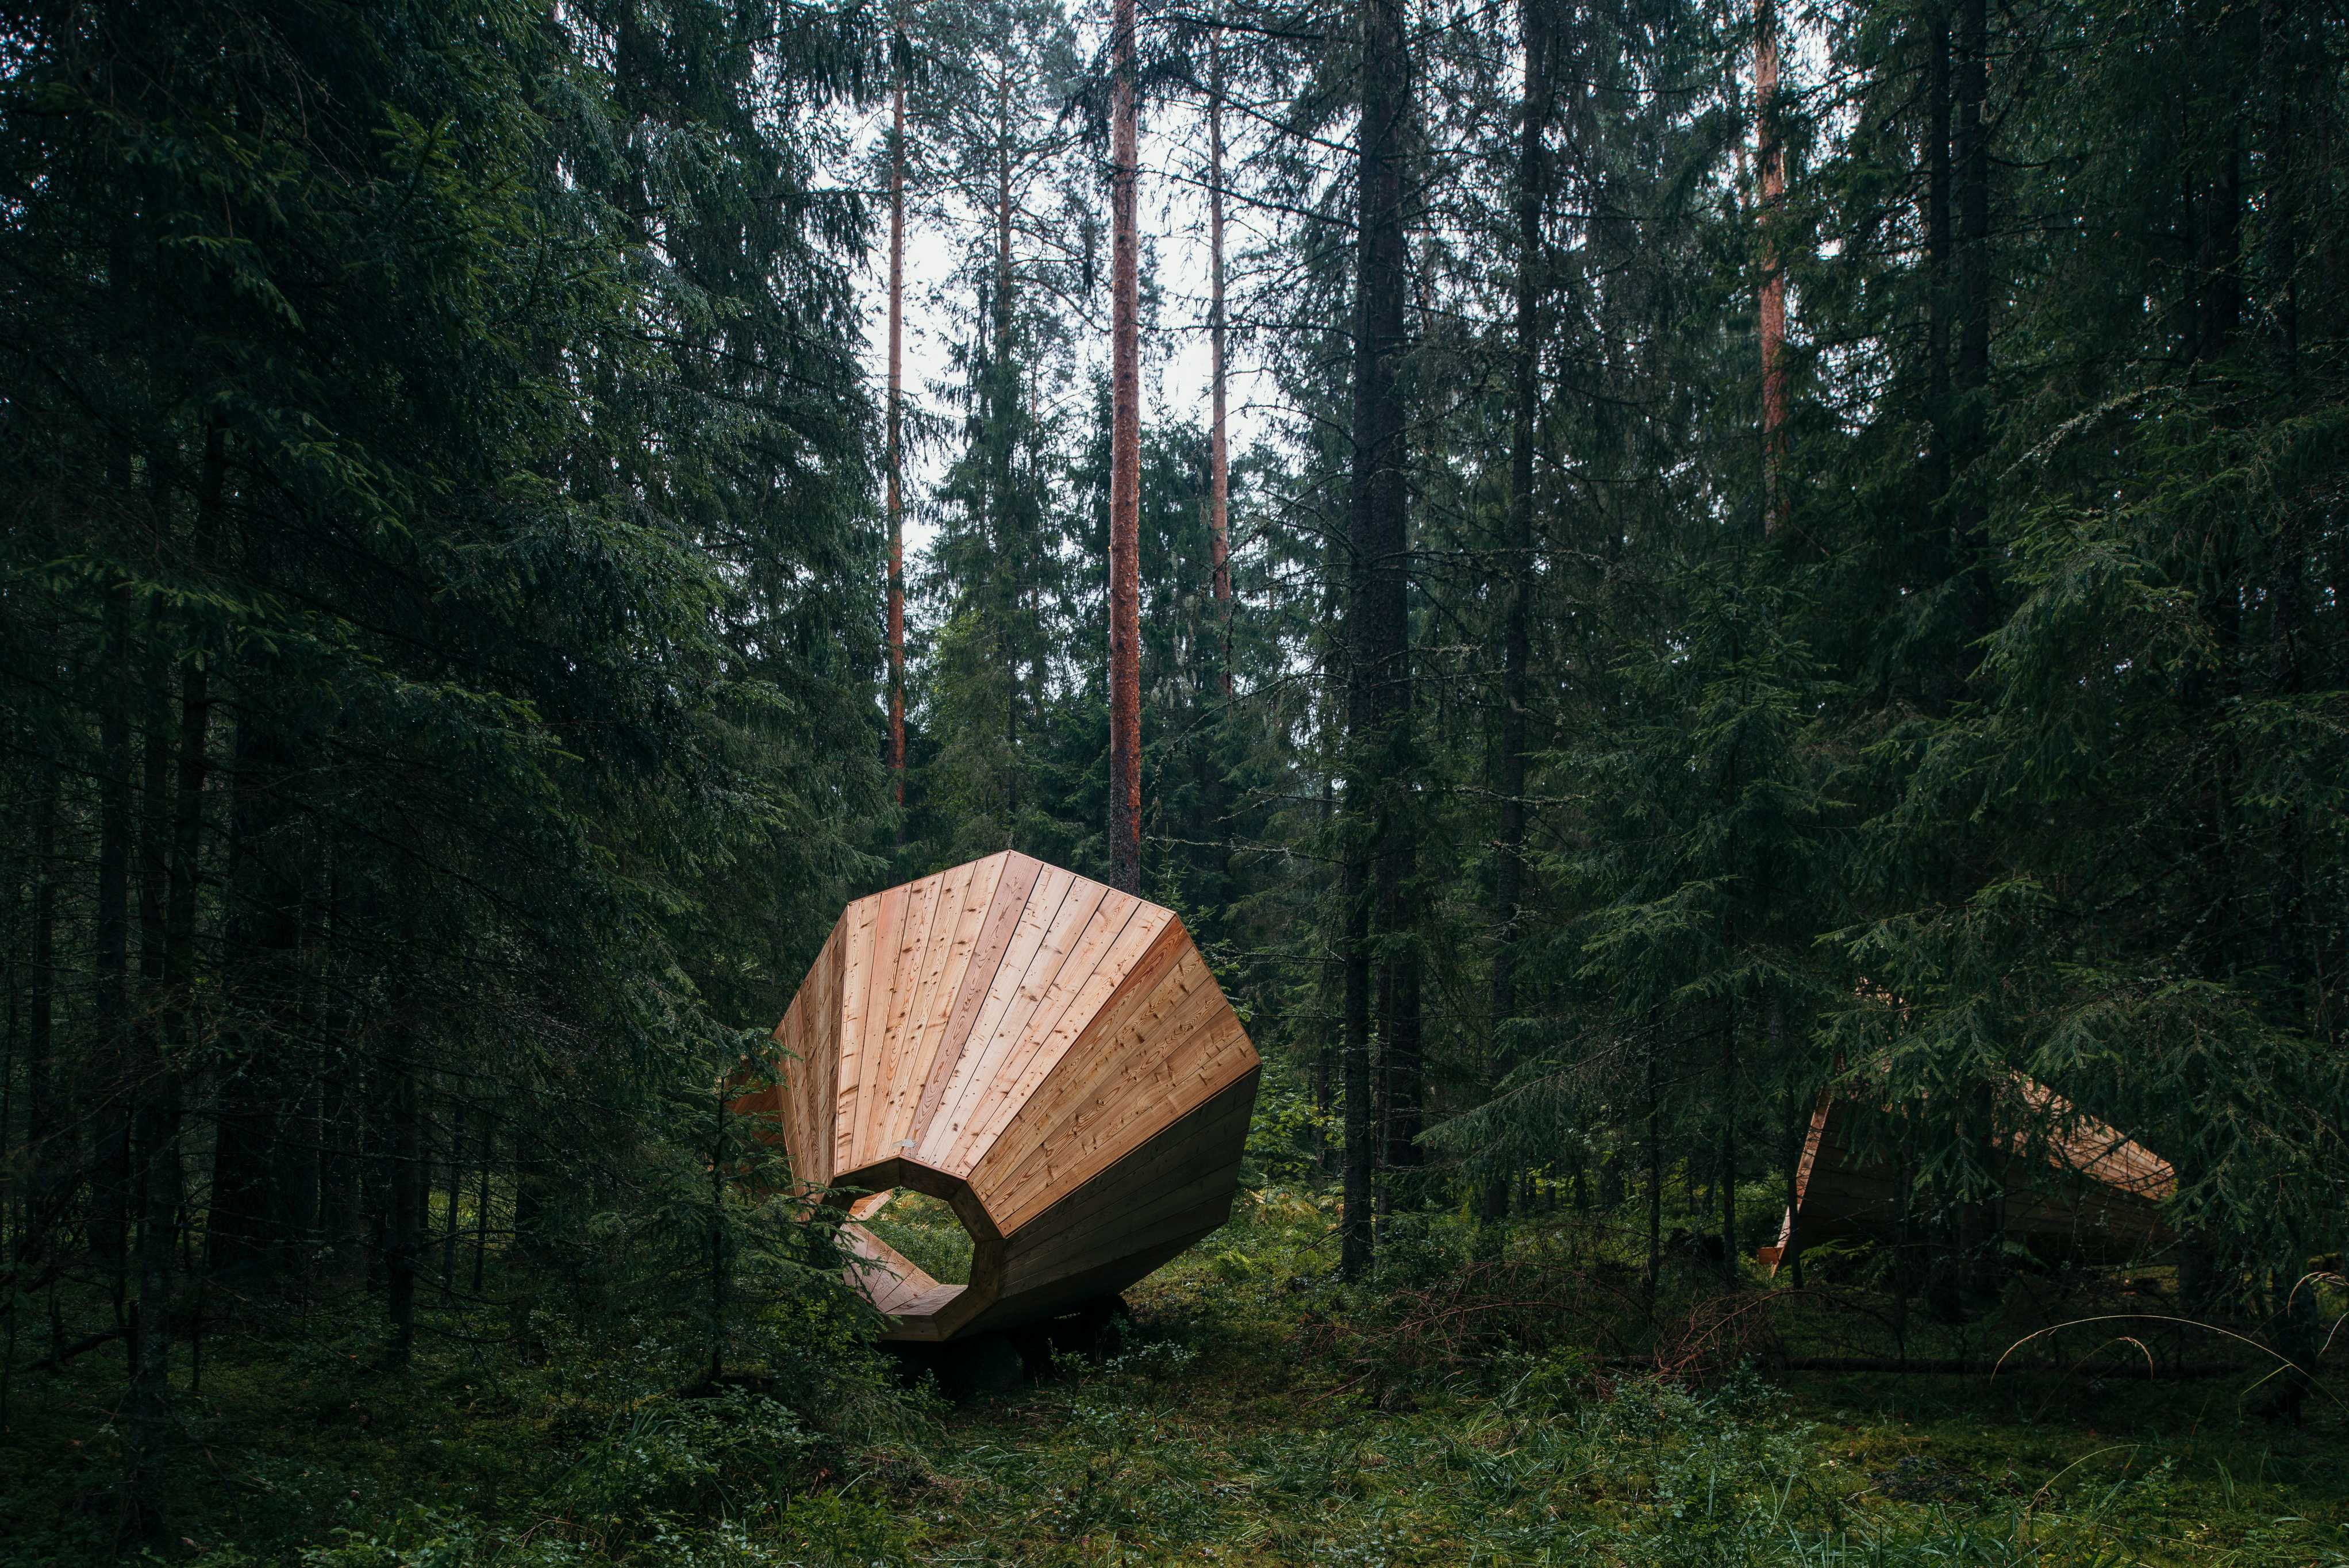 A giant wooden megaphone installation in the forest